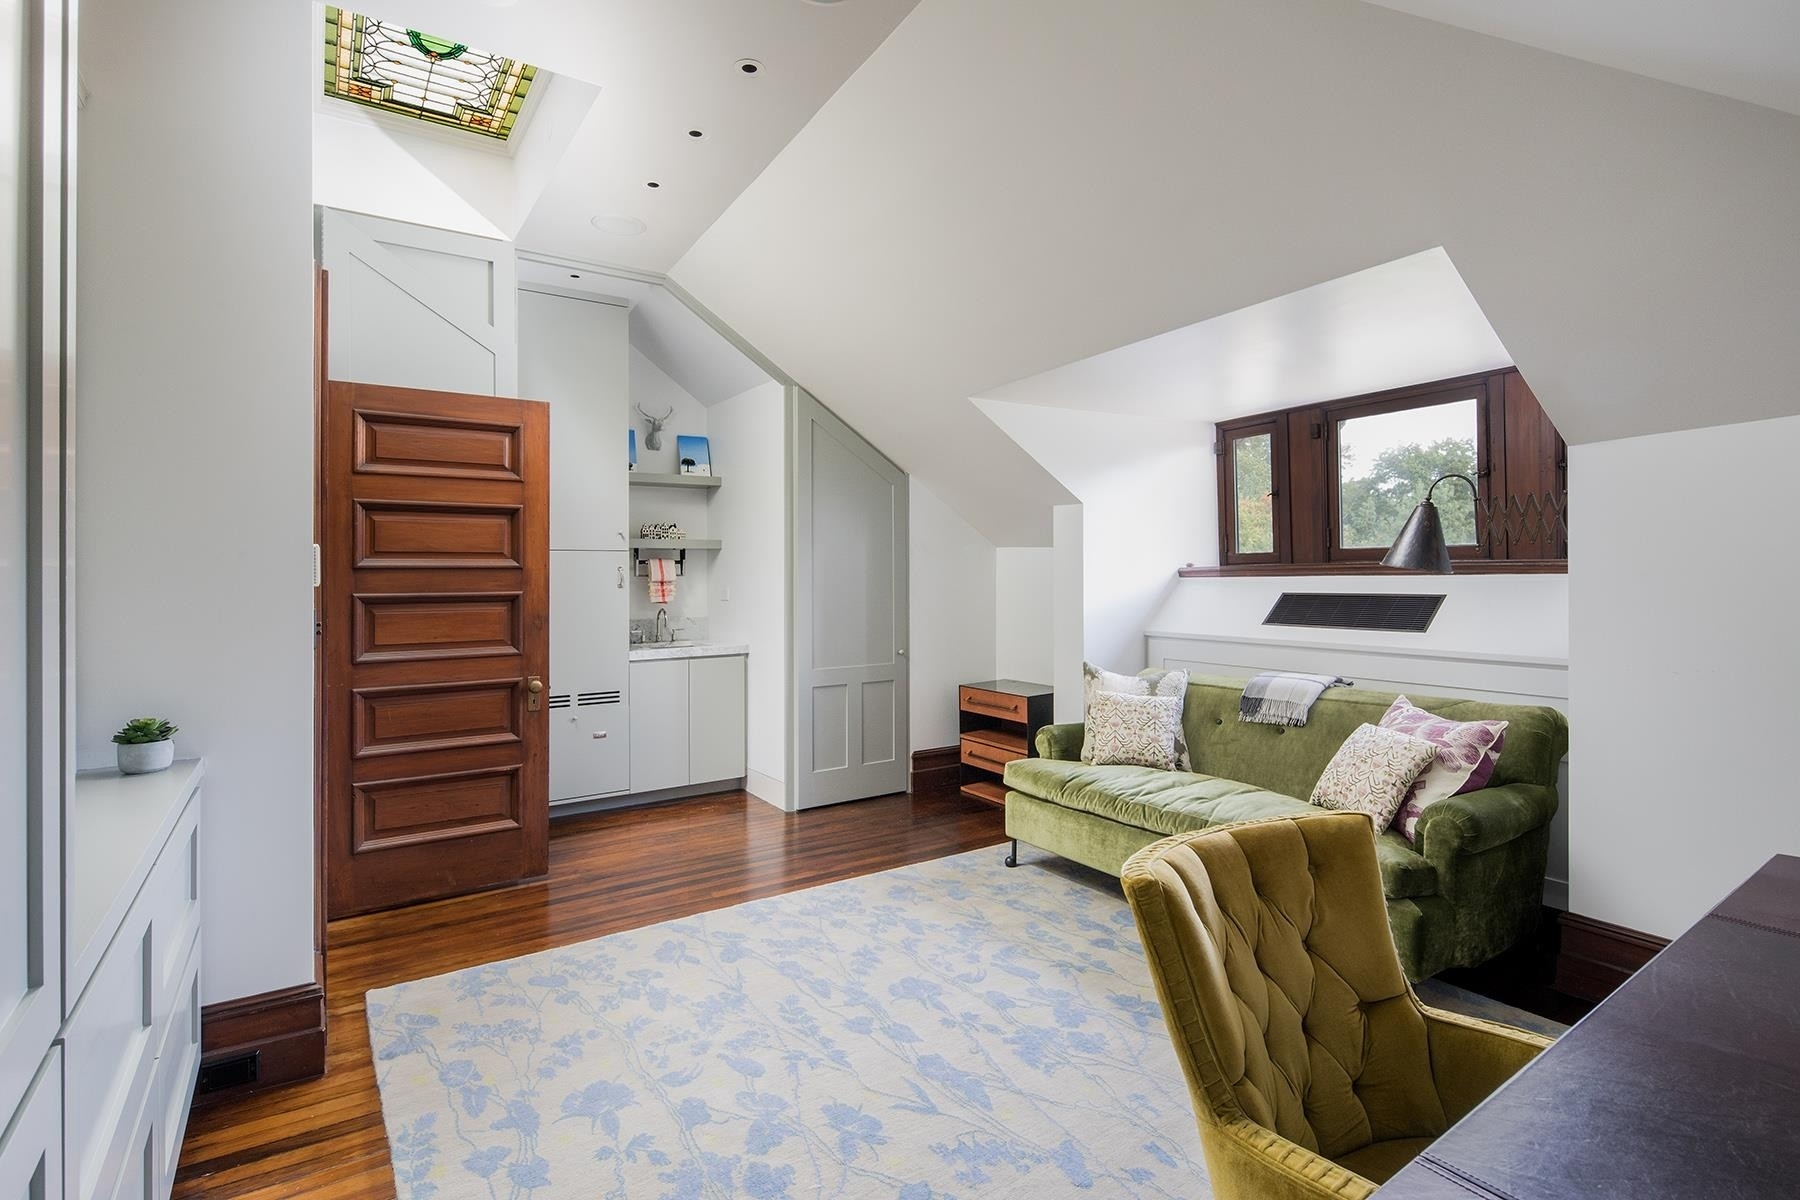 15. Single Family Townhouse for Sale at 17 PROSPECT PARK W, TOWNHOUSE Park Slope, Brooklyn, NY 11215